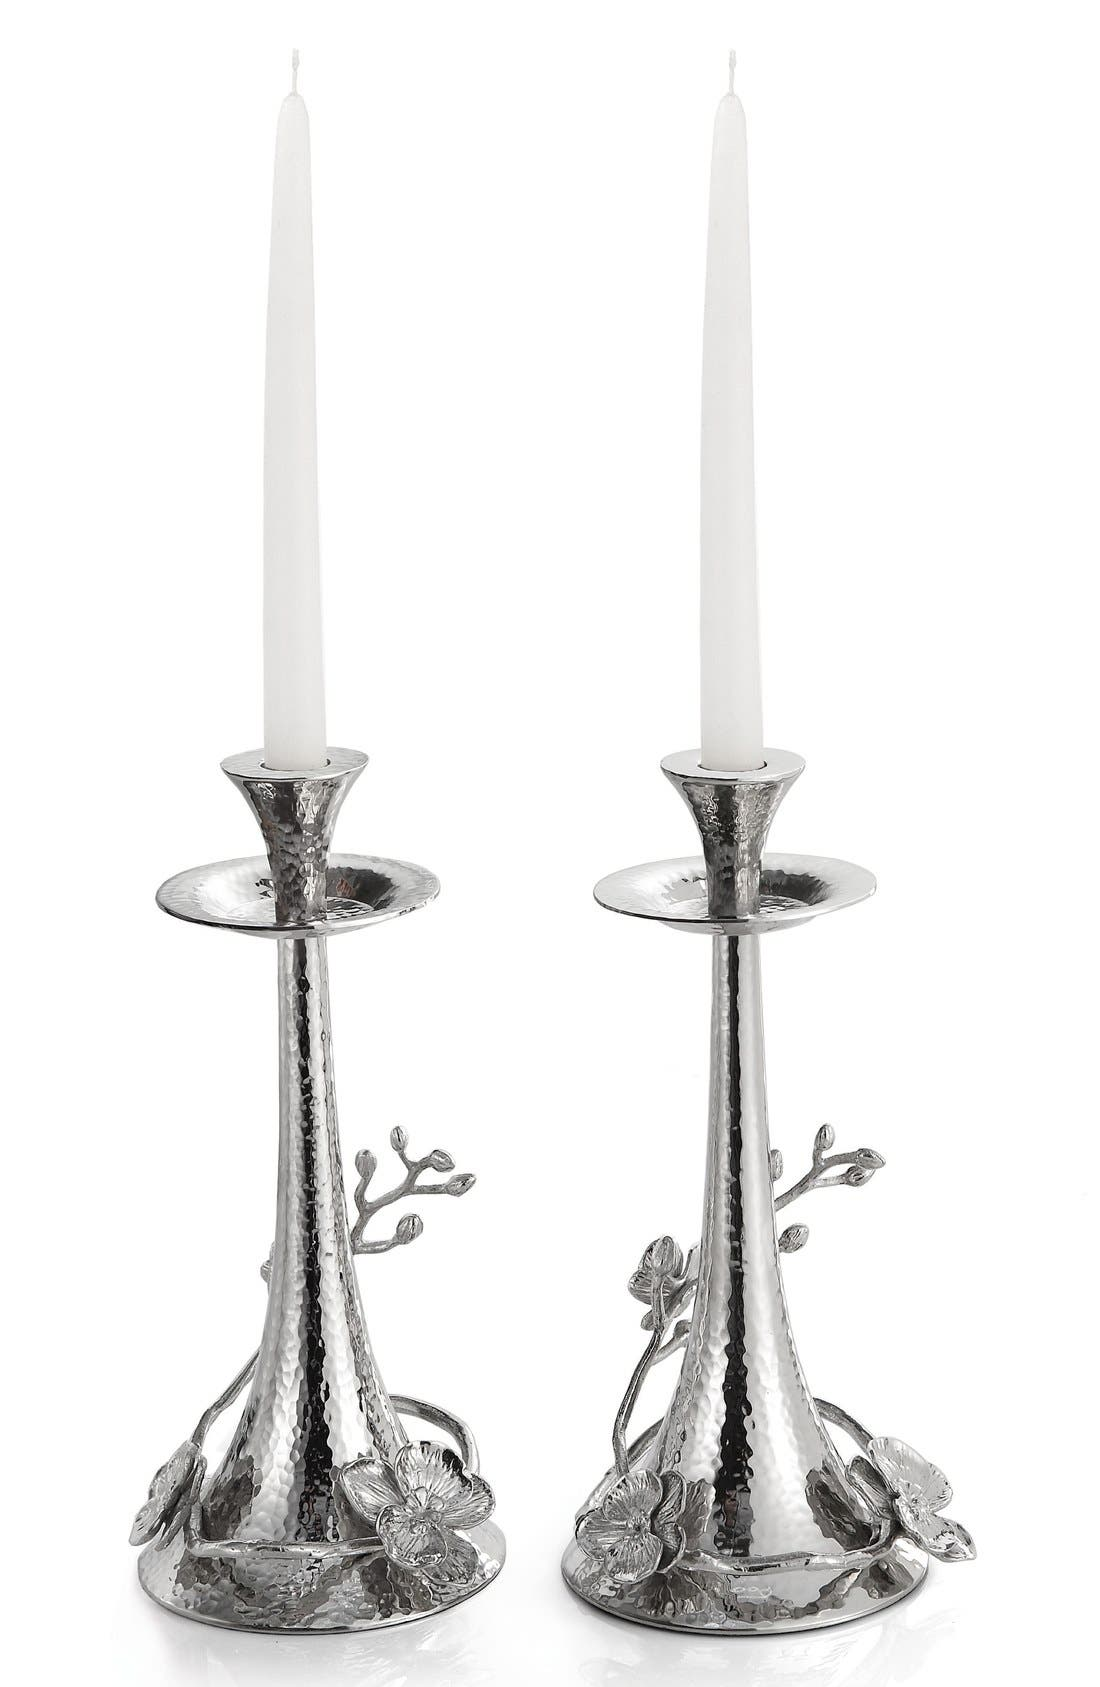 Michael Aram 'White Orchid' Candle Holders (Set of 2)